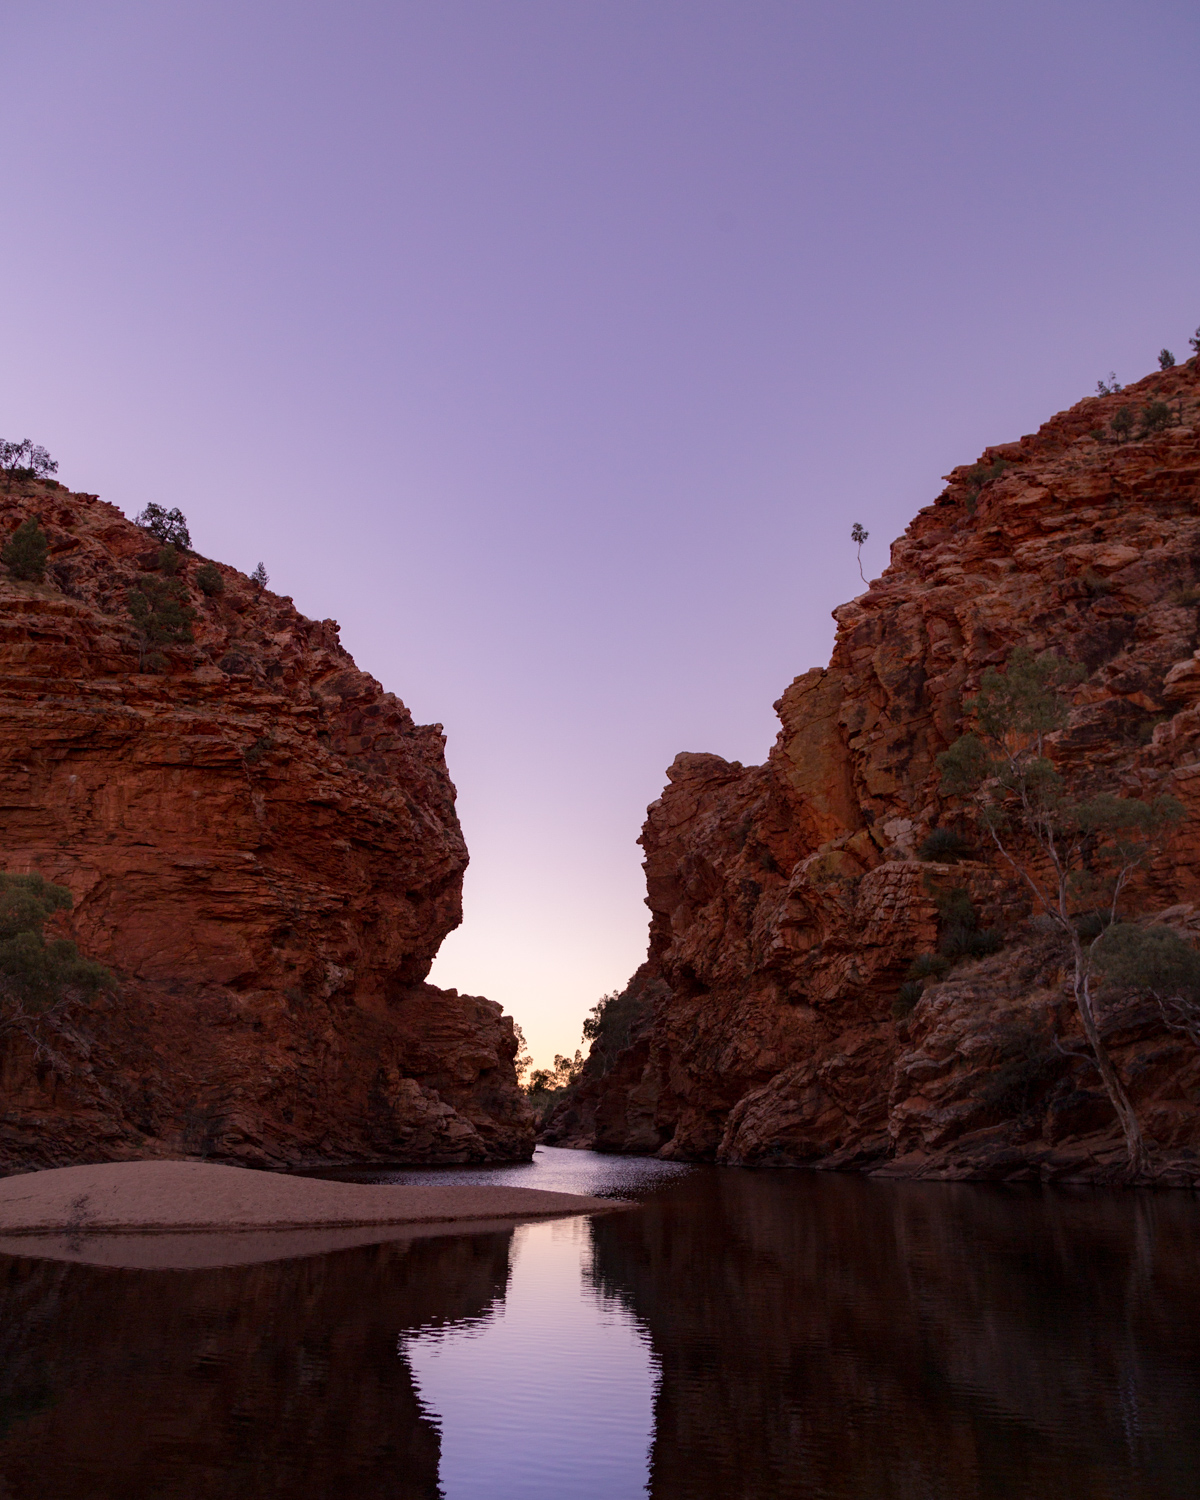 Where to stay in Alice Springs - Our guide to accommodation